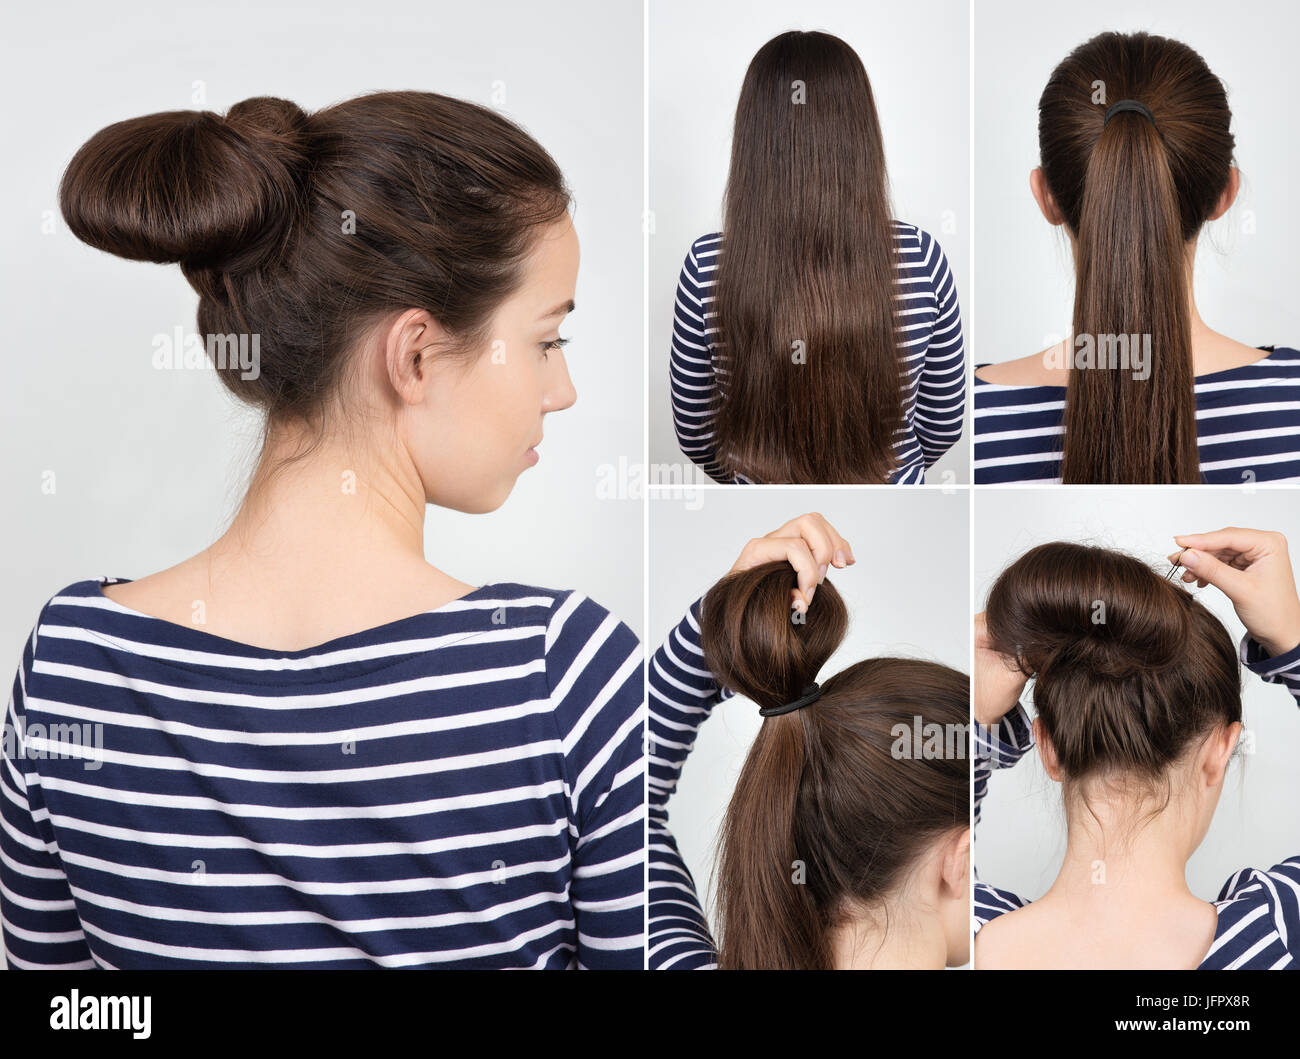 easy hairstyle twisted bun for self. Casual hairstyle tutorial